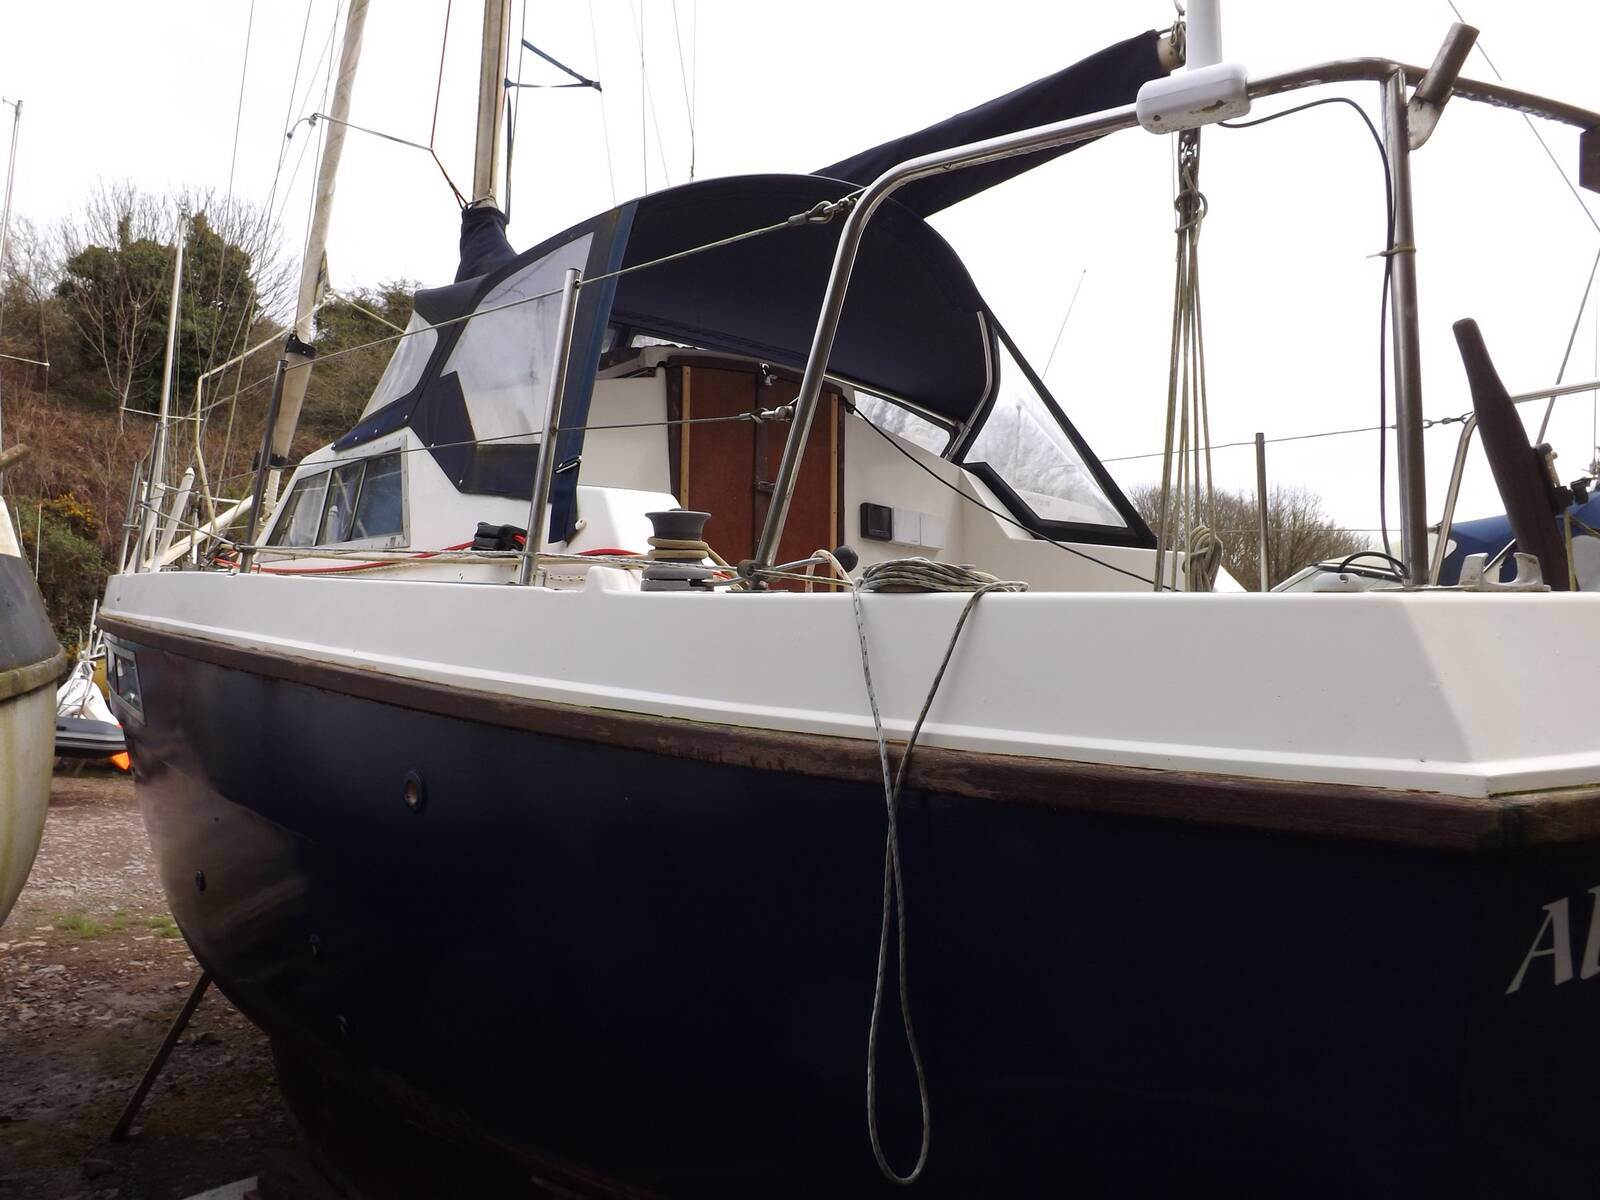 Southerly 28 - Brokerage - Milford Haven - Yachts.Co Milford Haven - Network Yacht Brokers Milford Haven 01646 278270